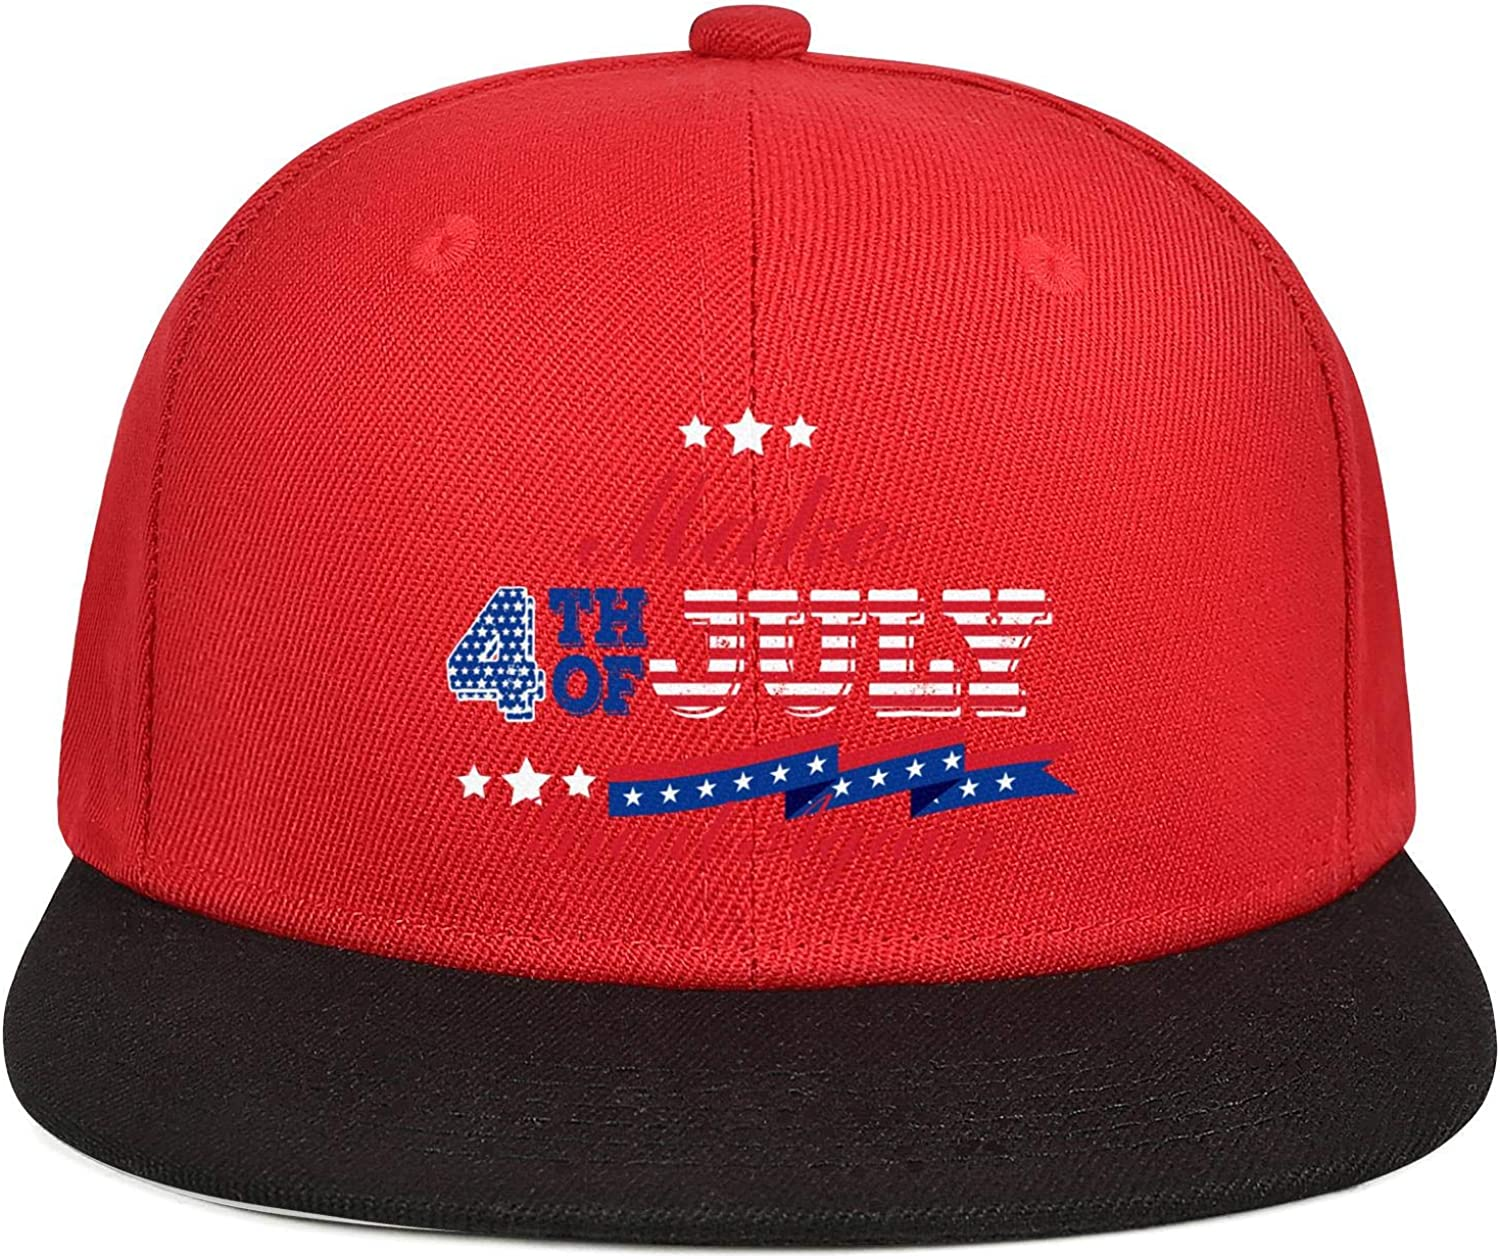 KYTKYTT Unisex Mesh Snapback Cap Make 4th of July Great Again American Flag Flat Hip Hop Baseball Hats